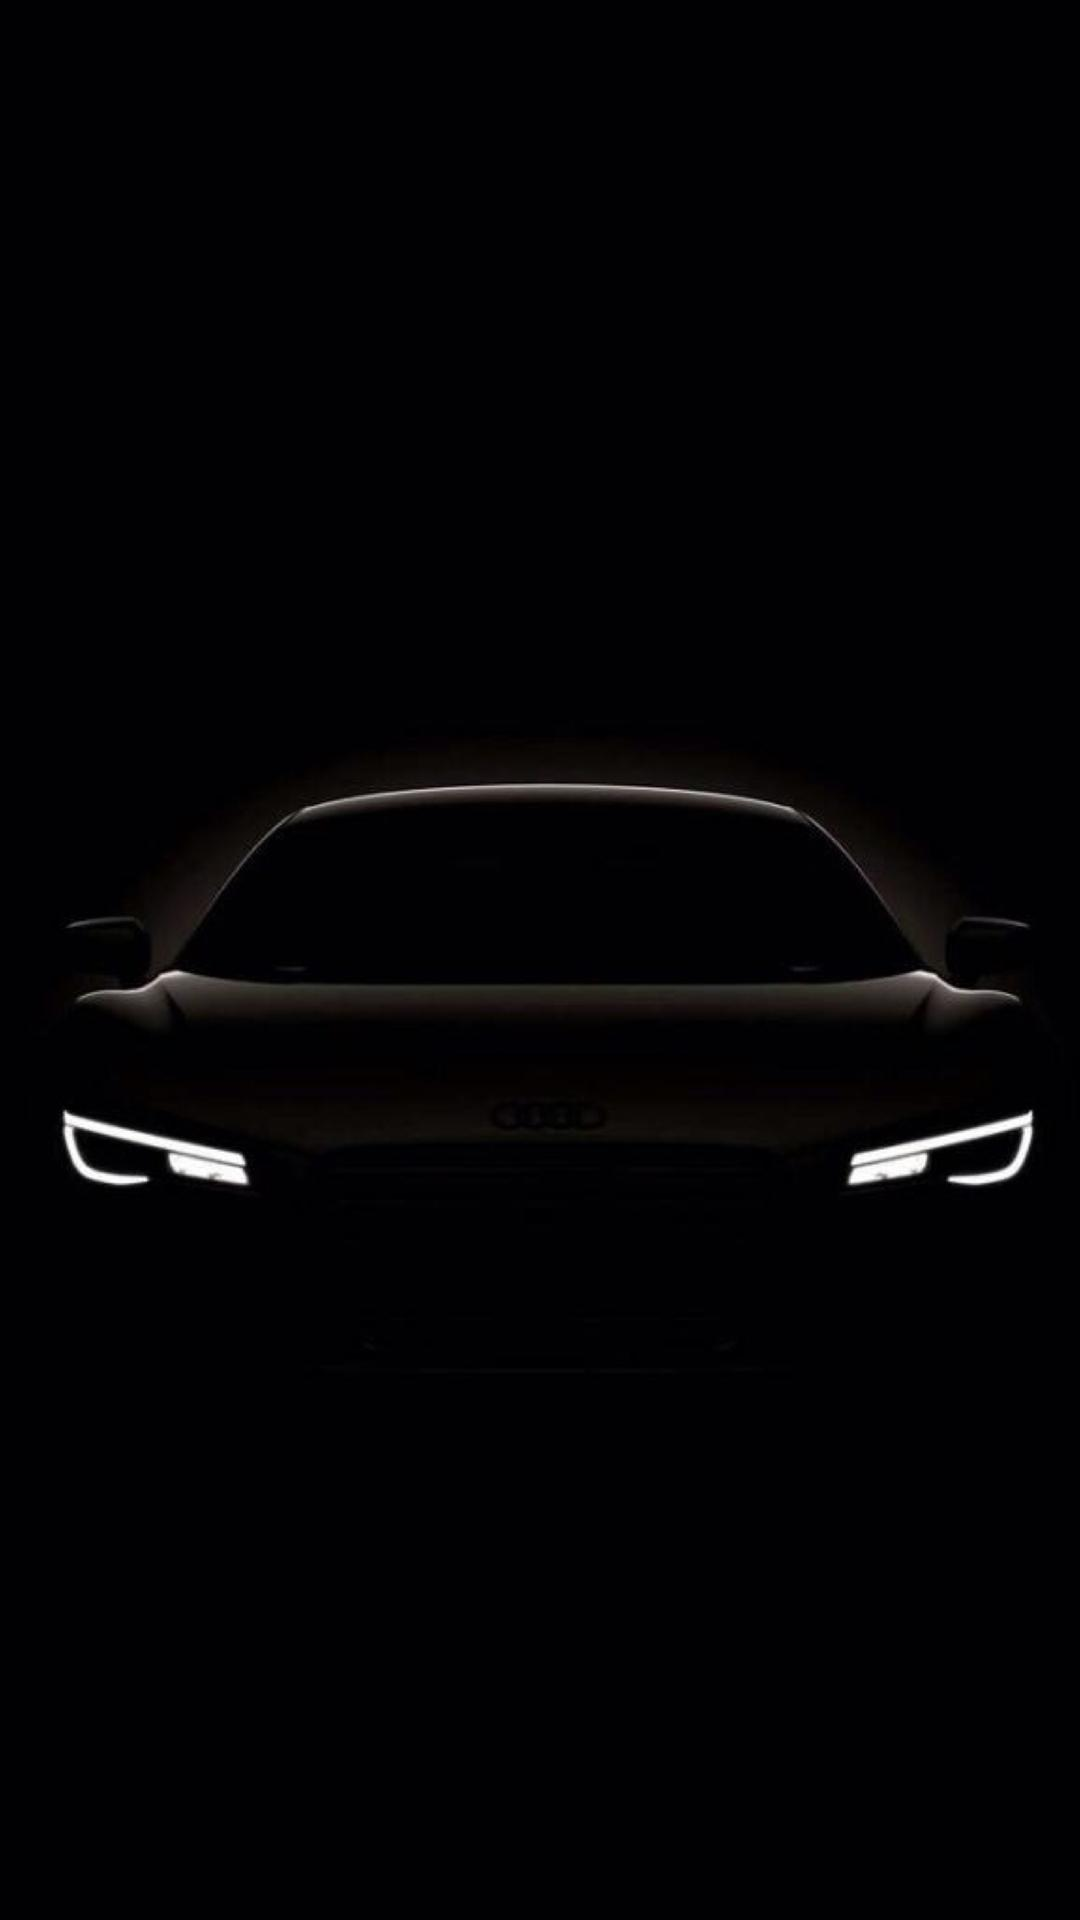 Audi Logo Iphone Wallpapers Wallpaper Cave